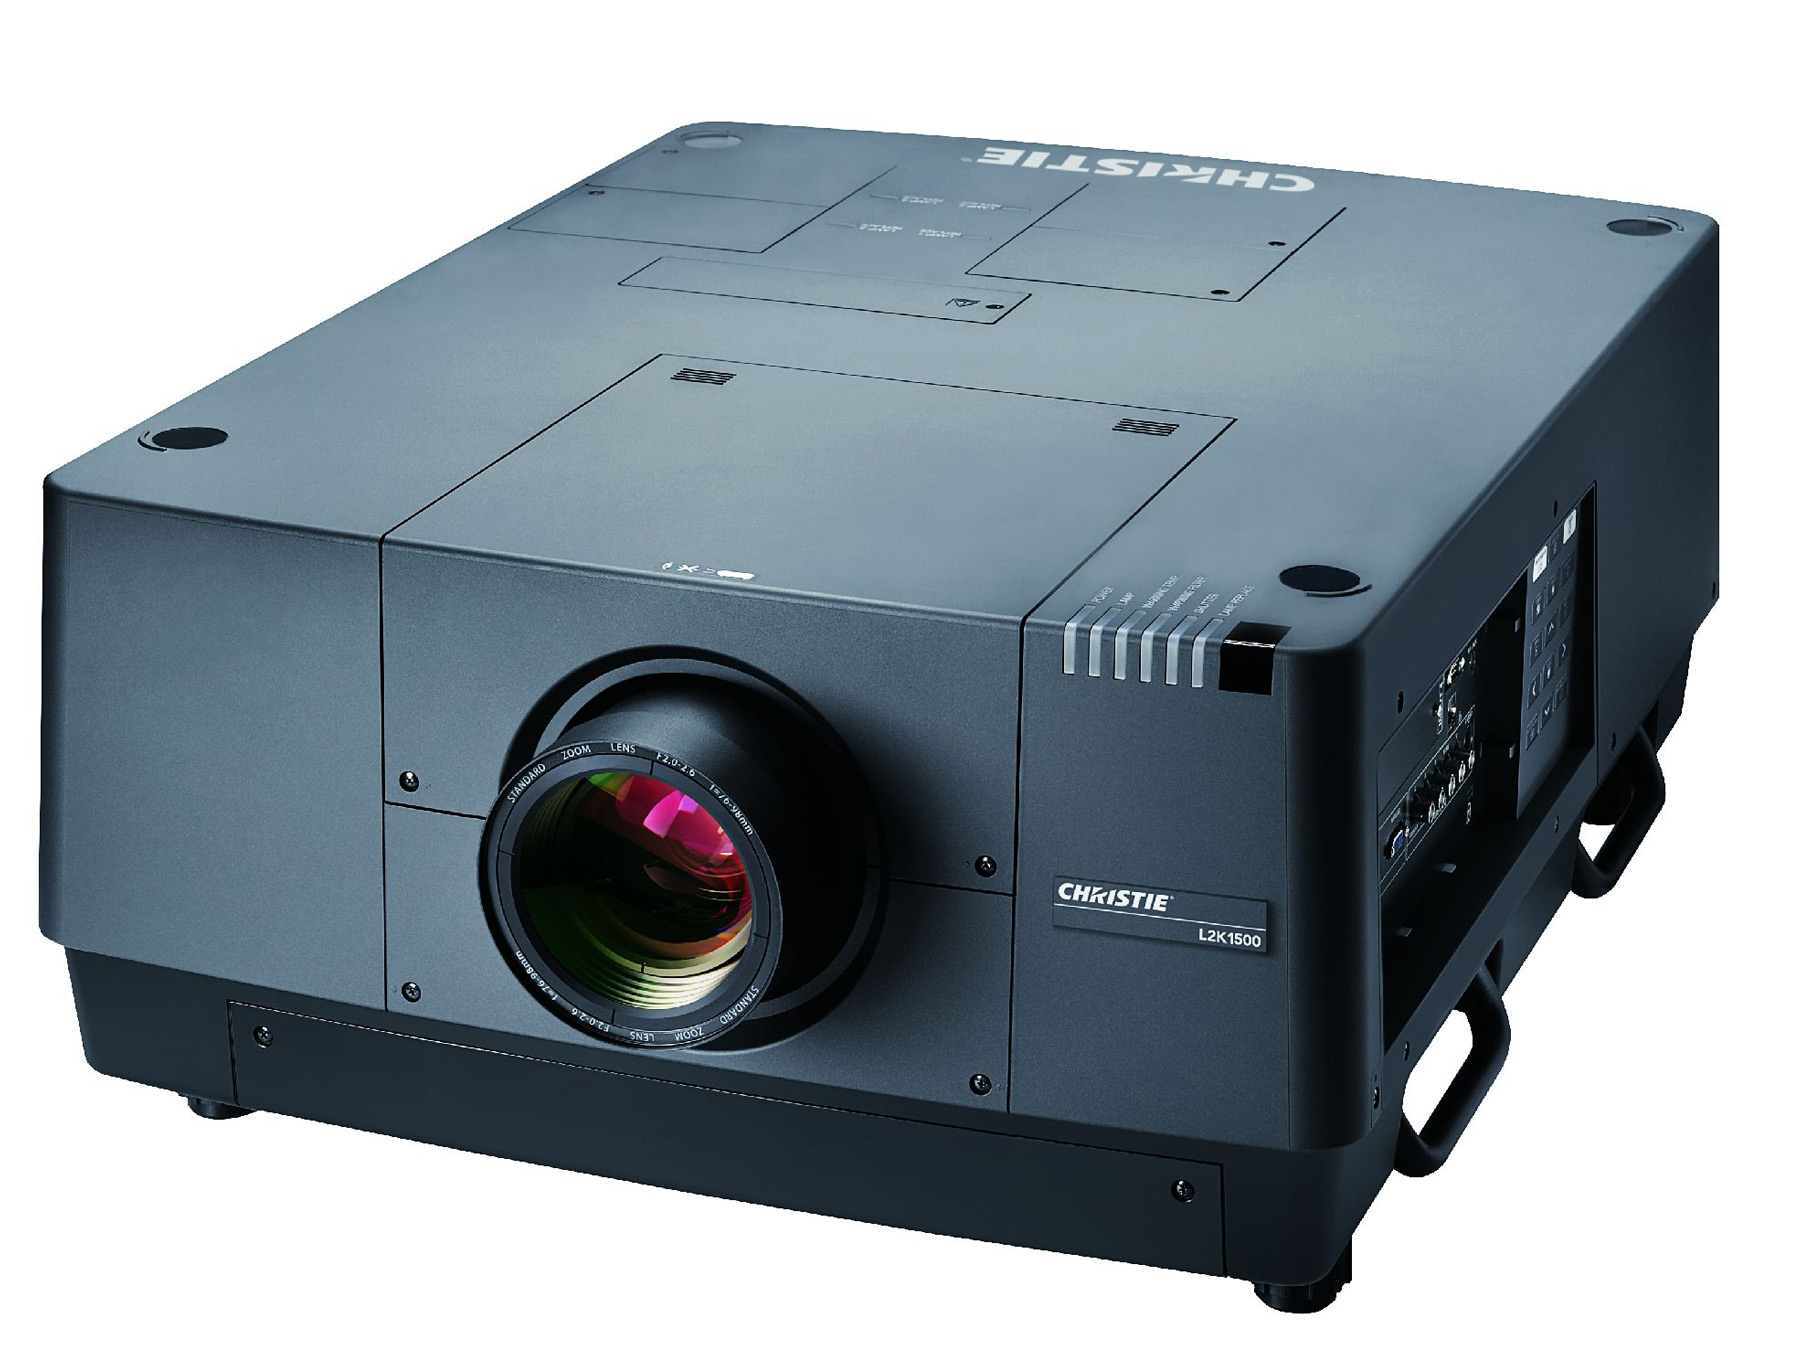 /globalassets/.catalog/products/images/christie-l2k1500/gallery/christie-l2k-1500-3-lcd-digital-projector-image-11.jpg